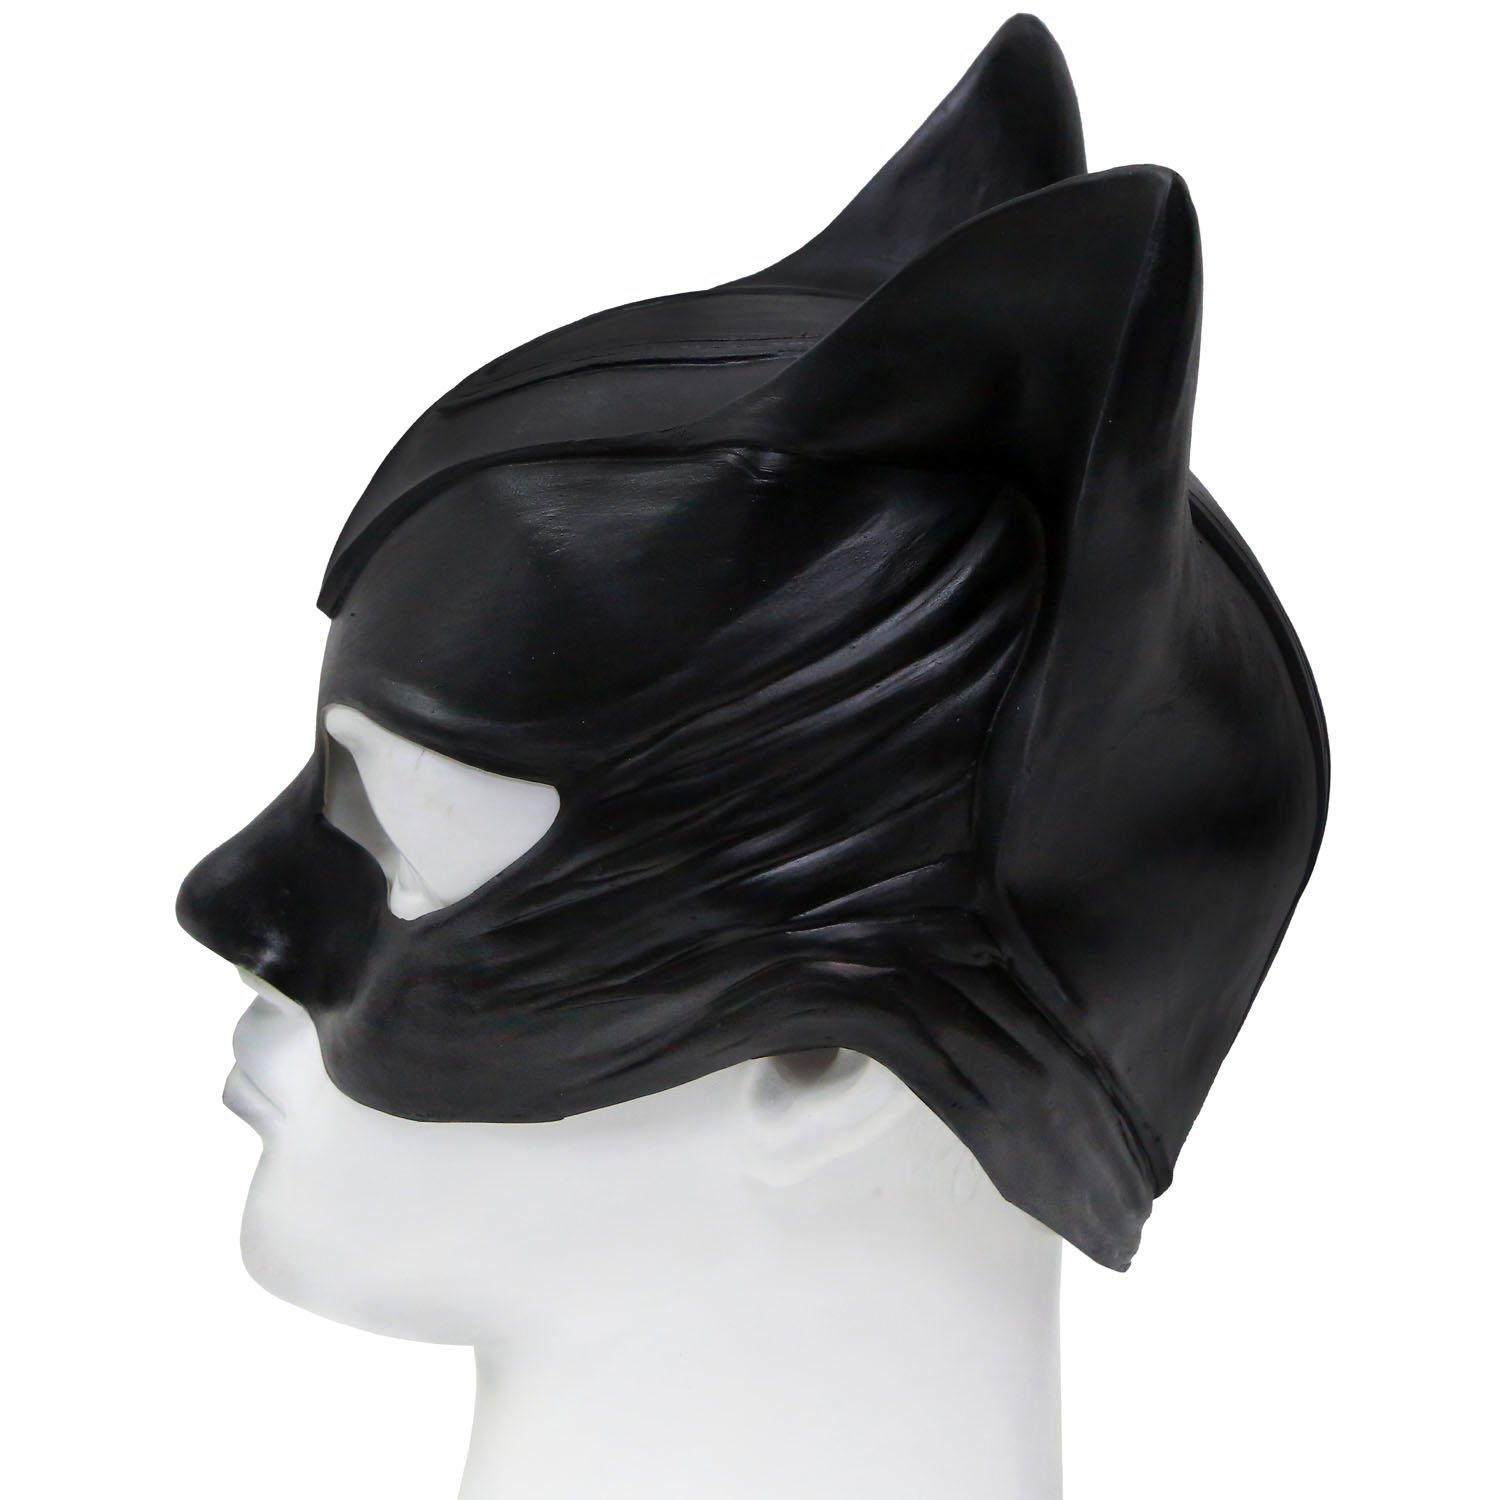 ویکالا · خرید  اصل اورجینال · خرید از آمازون · Women's Newest Edition Cat Mask Women for Halloween Cosplay Costume Party Black wekala · ویکالا